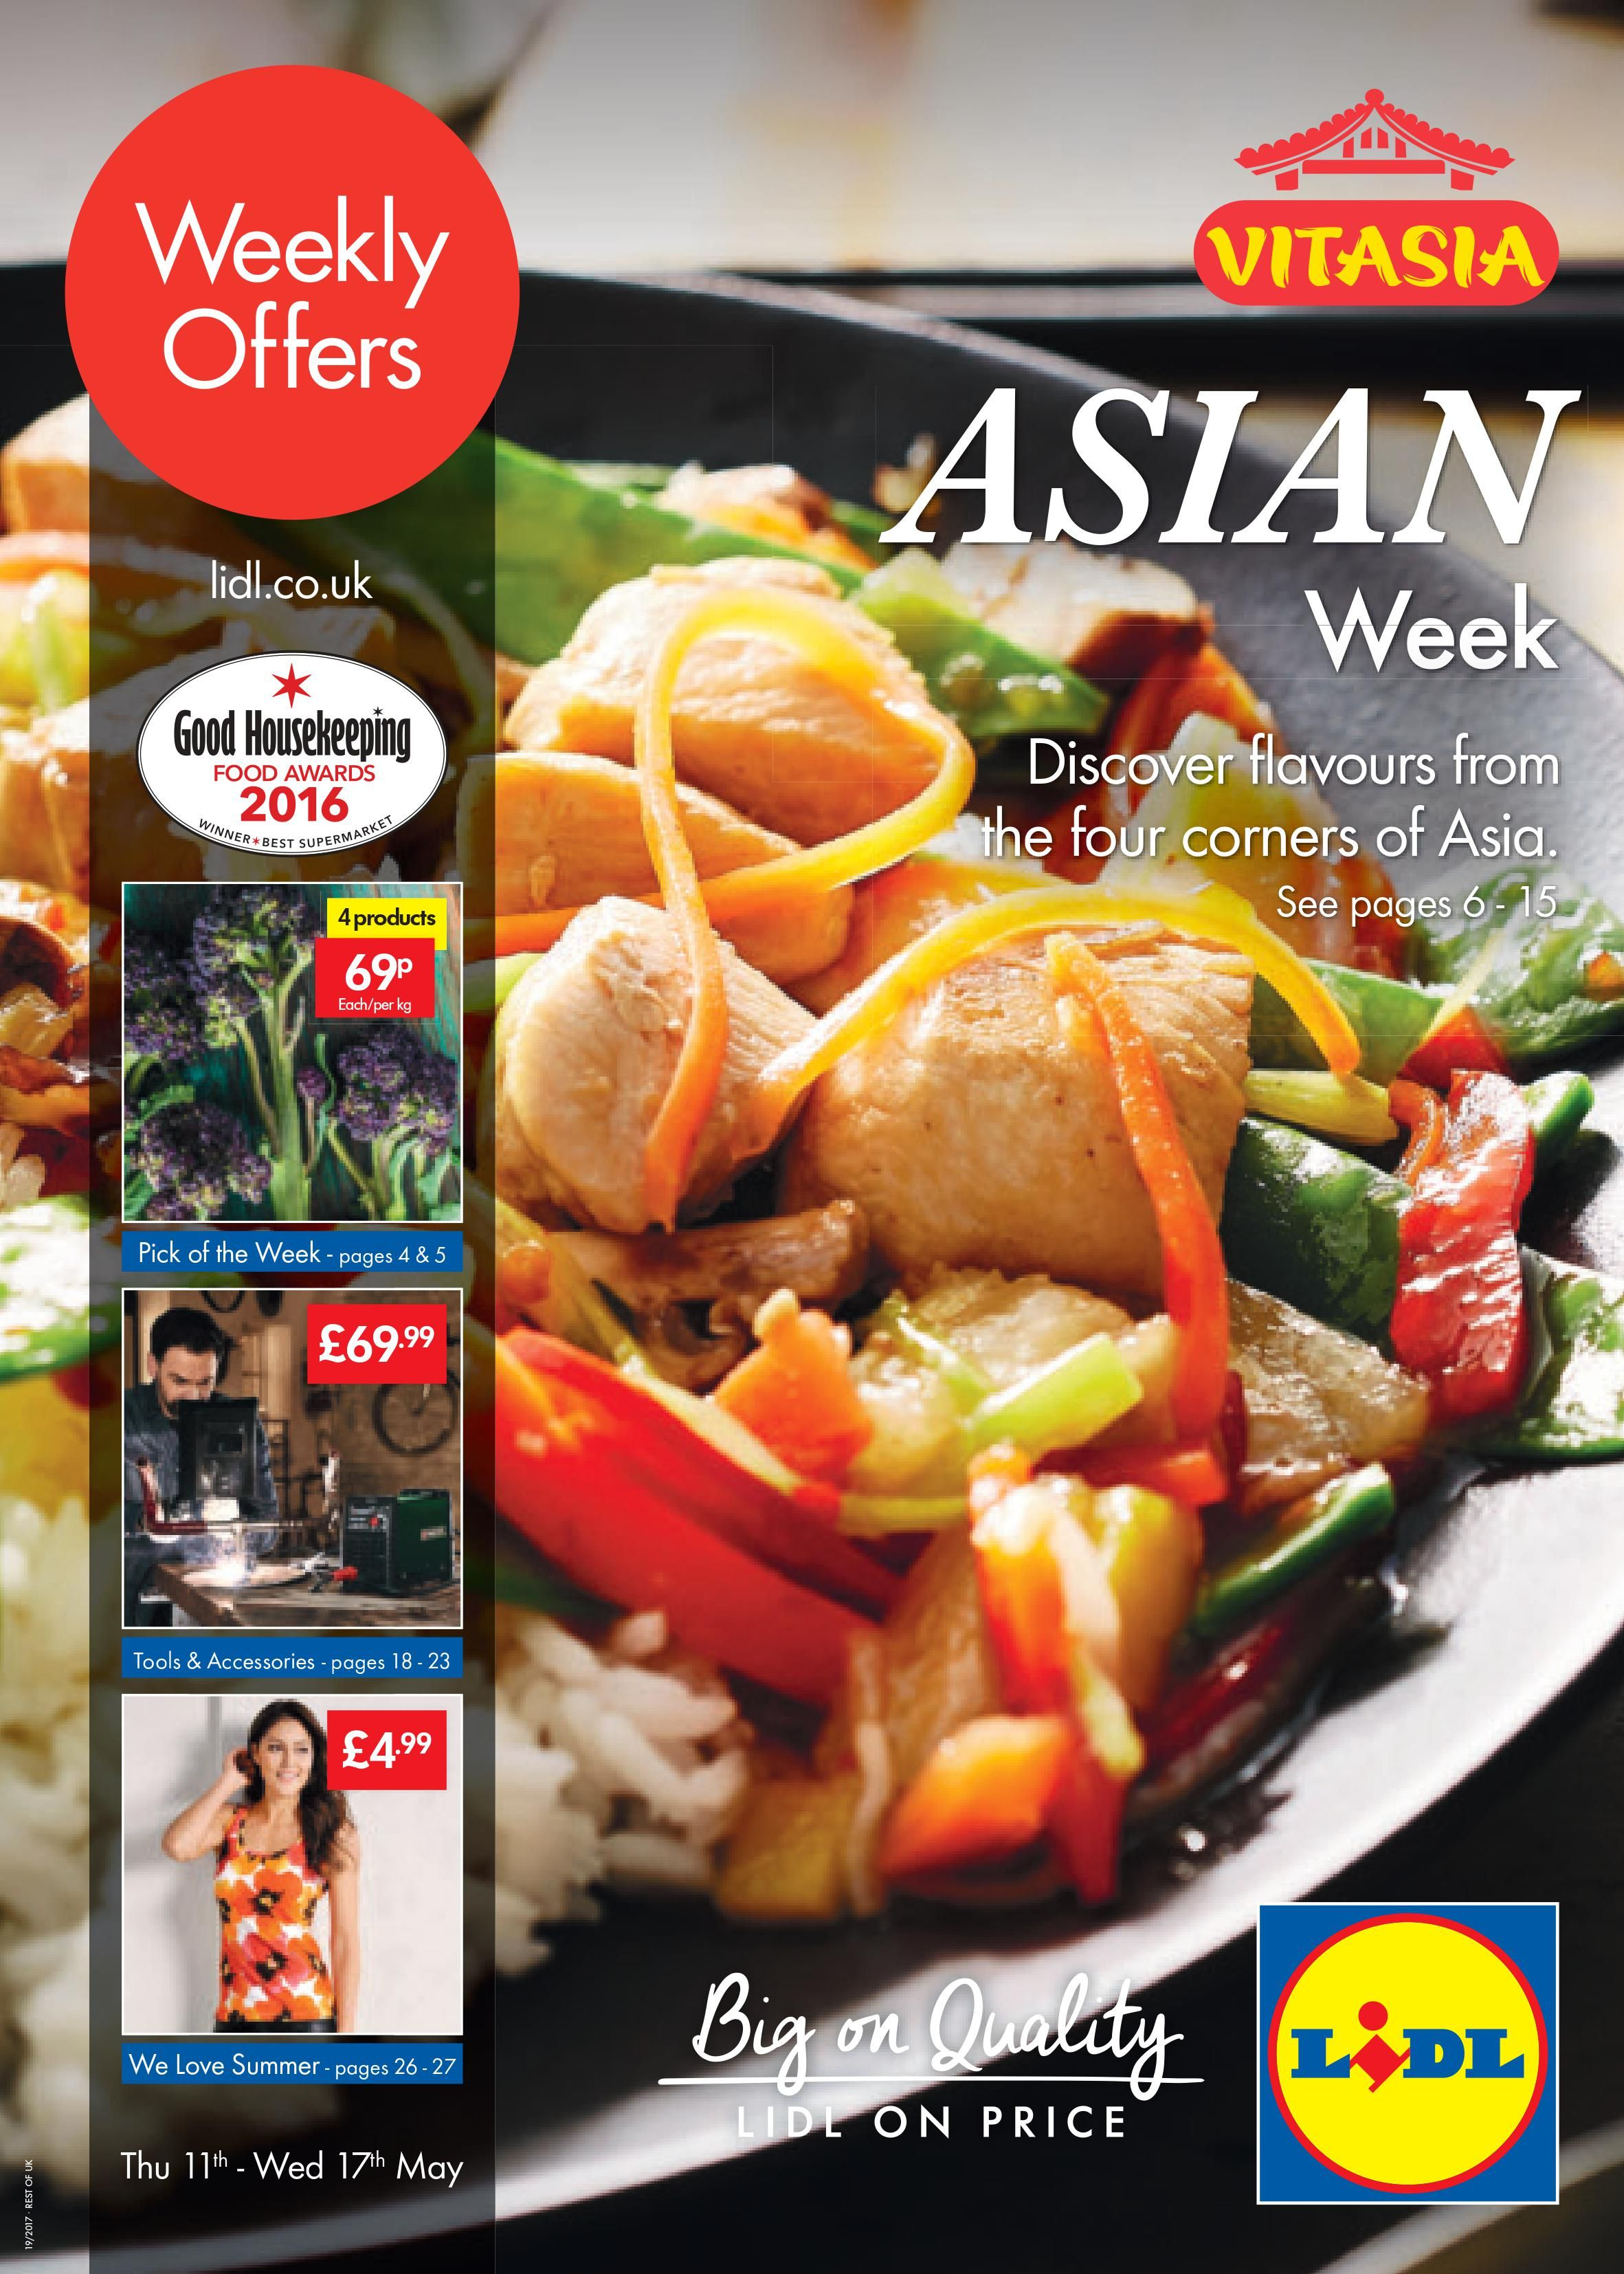 Lidl Offers Leaflet 11th May 17th May 2017 Lidl Food Good Housekeeping